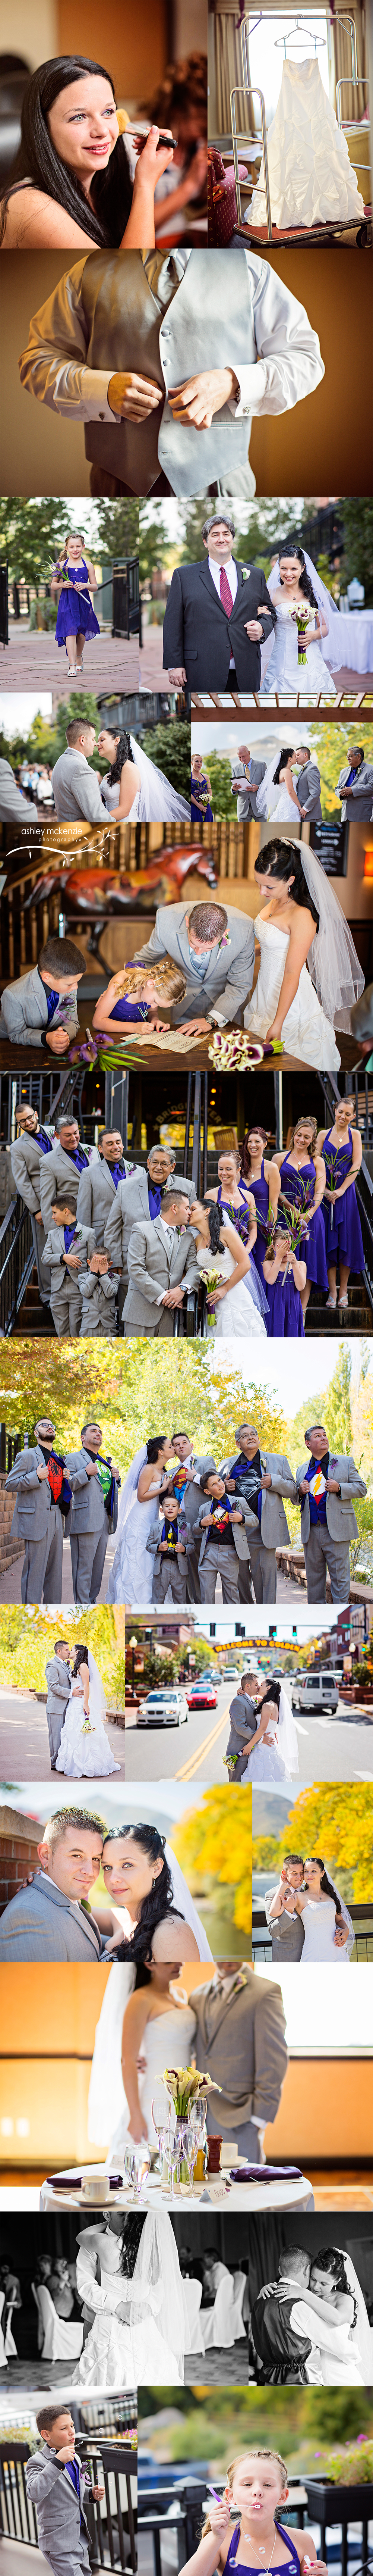 Wedding Photography by Ashley McKenzie Photography in Golden, CO